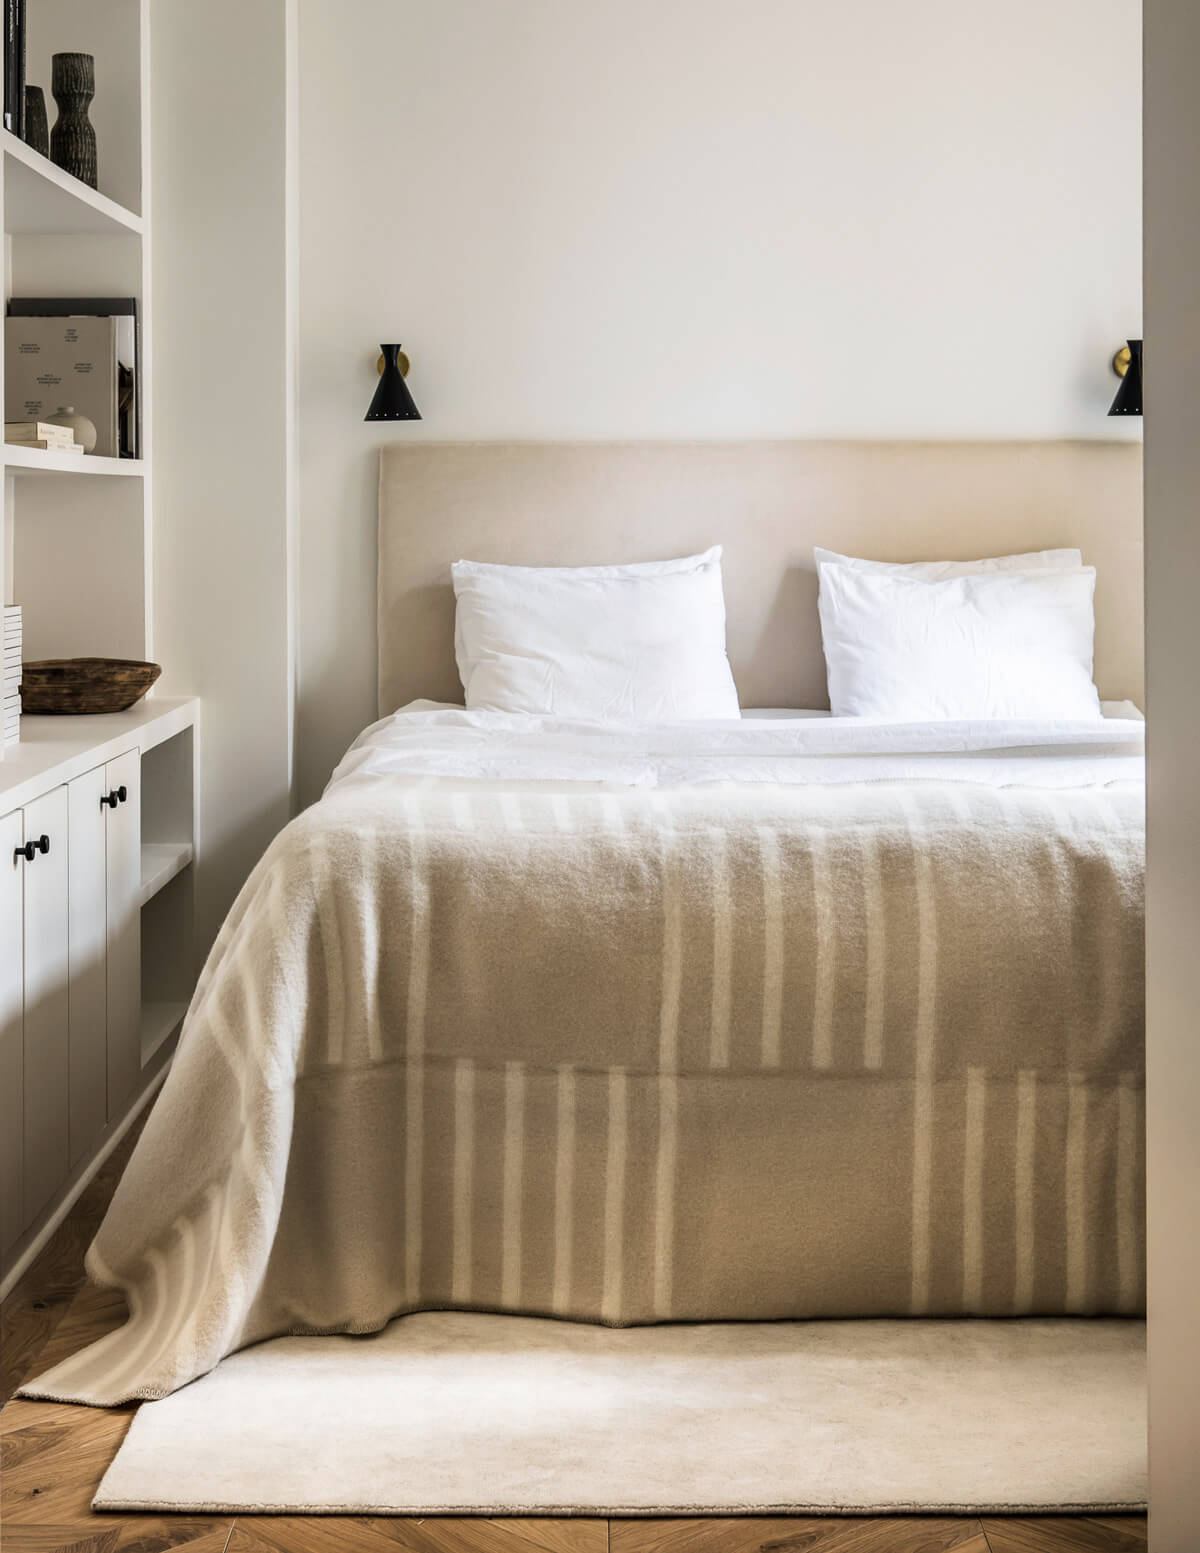 The Grand rug in Dusty White in a bright bedroom, with our Classic rug used as a throw on the bed.